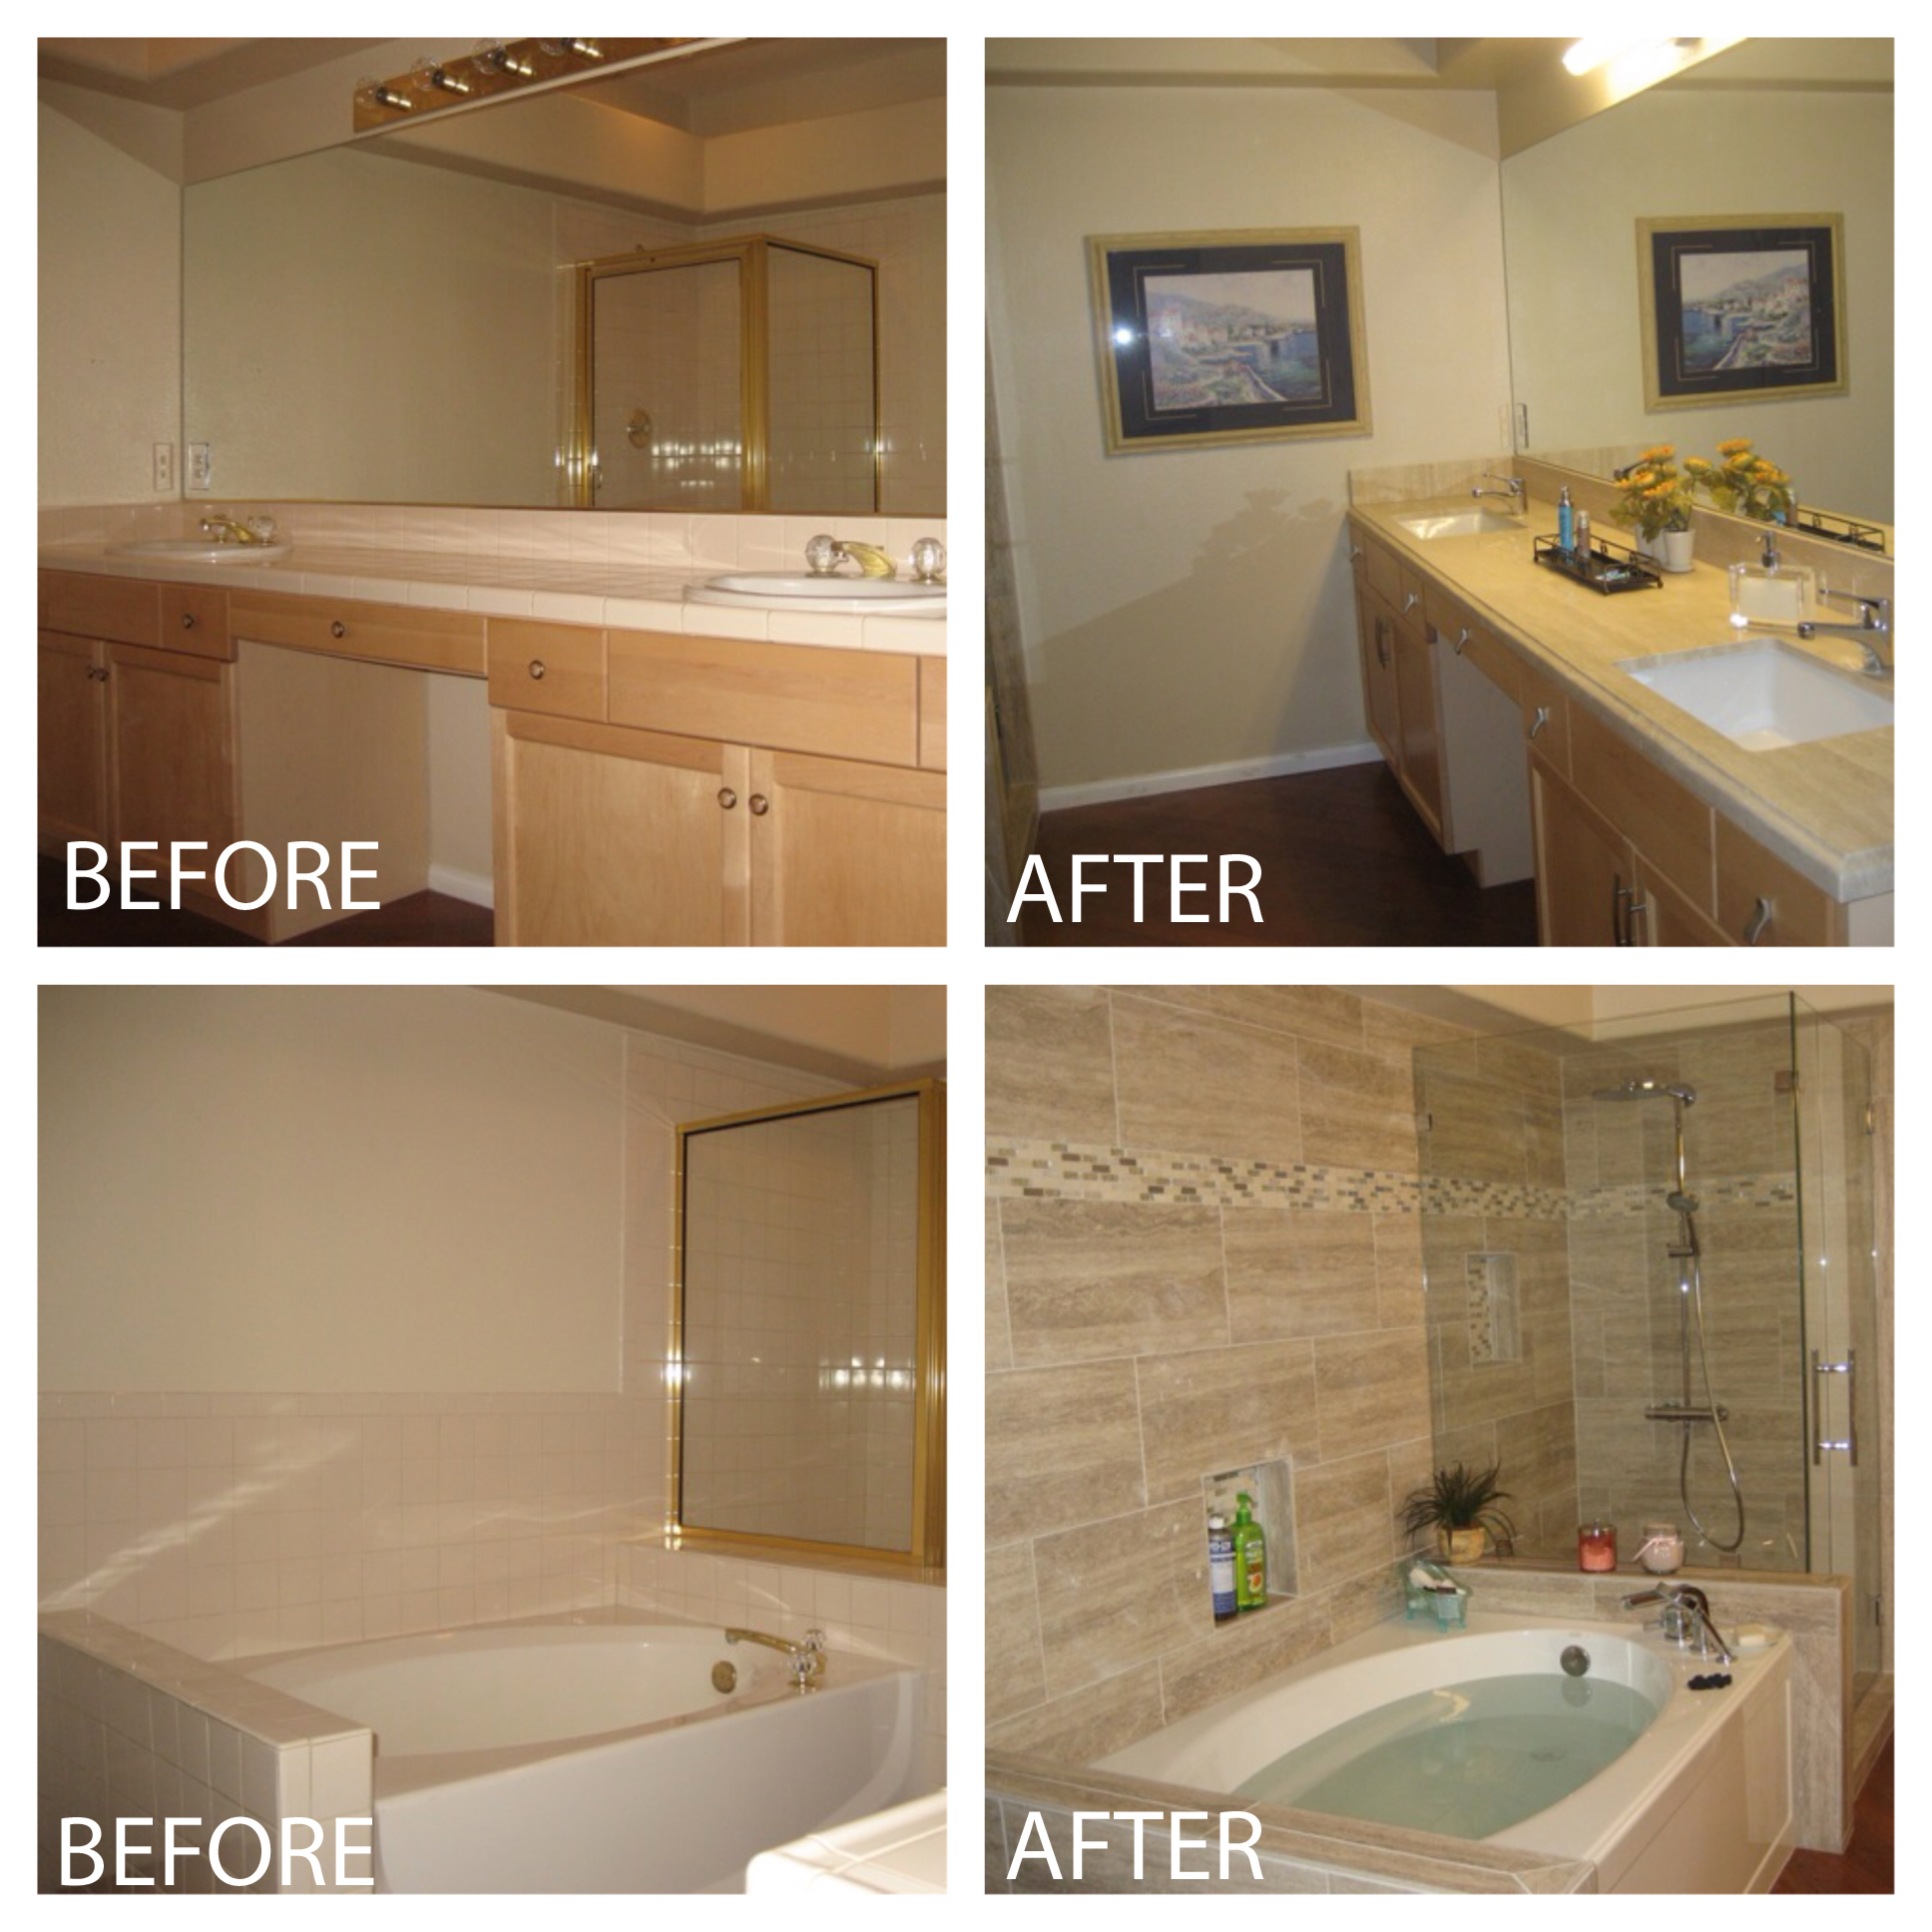 Check out this bathroom revamp!